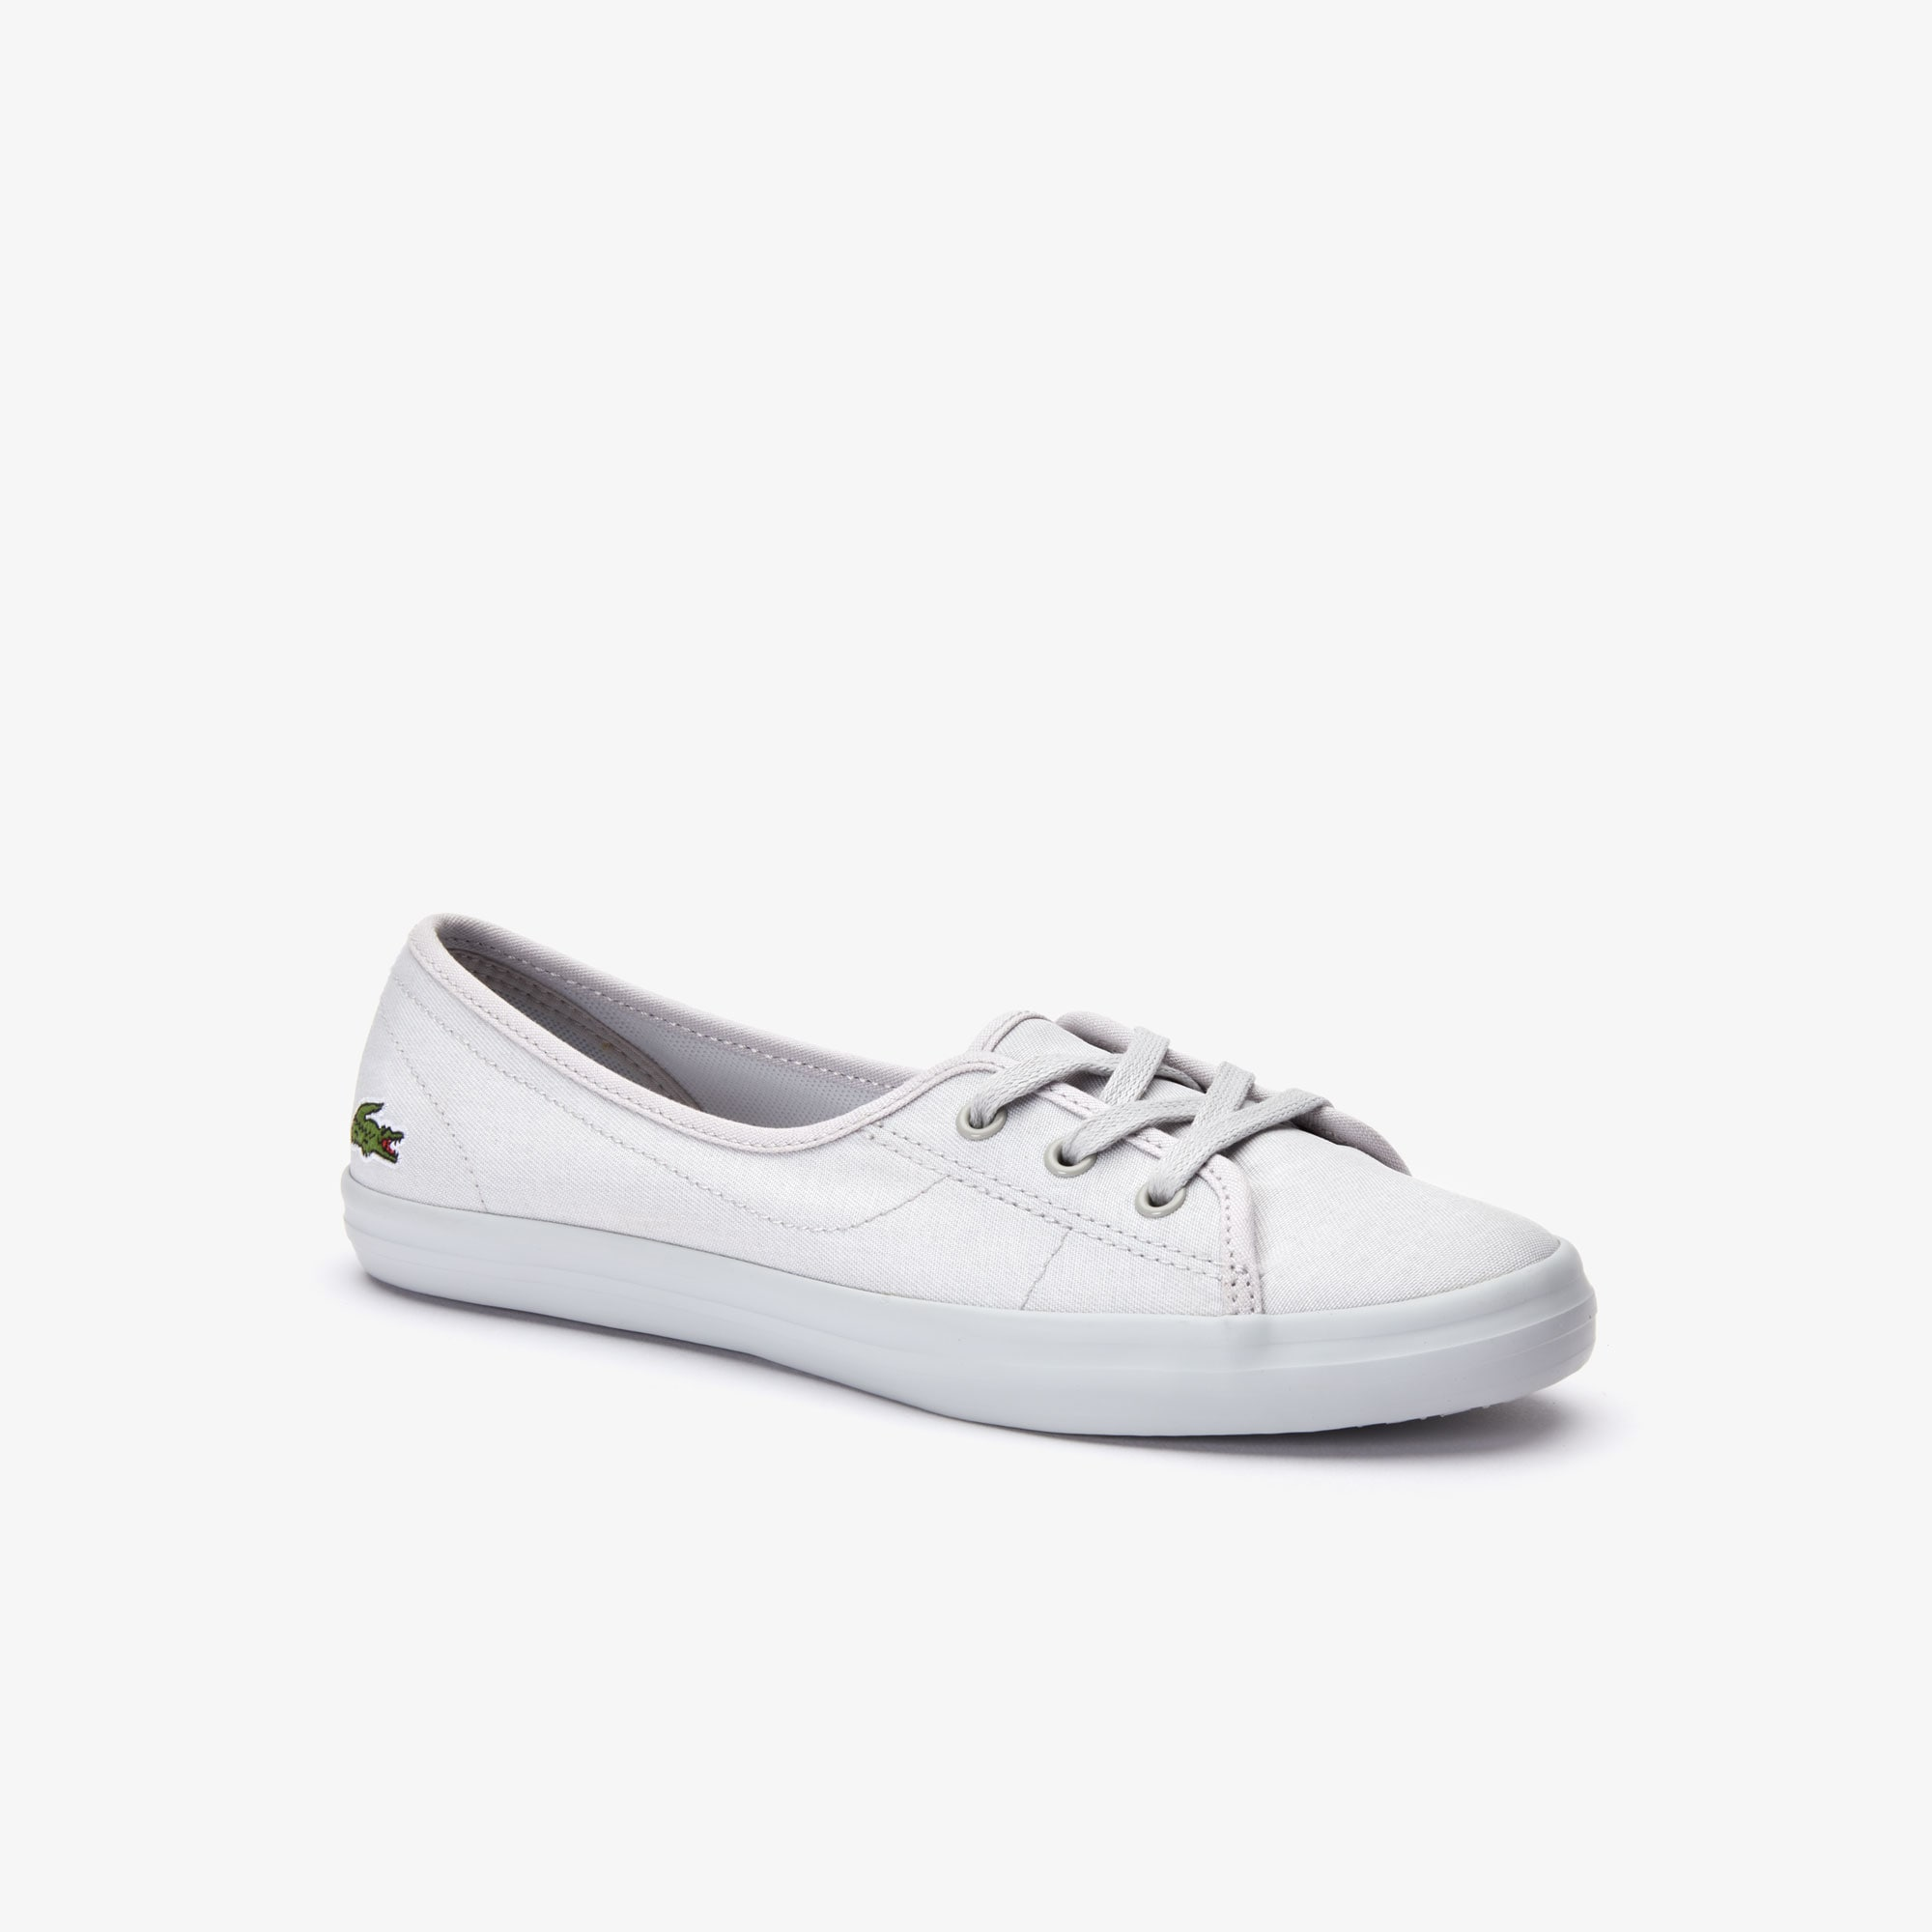 Chaussures Chaussures Lacoste ToileFemme Chaussures En Lacoste ToileFemme En Rjq35L4A